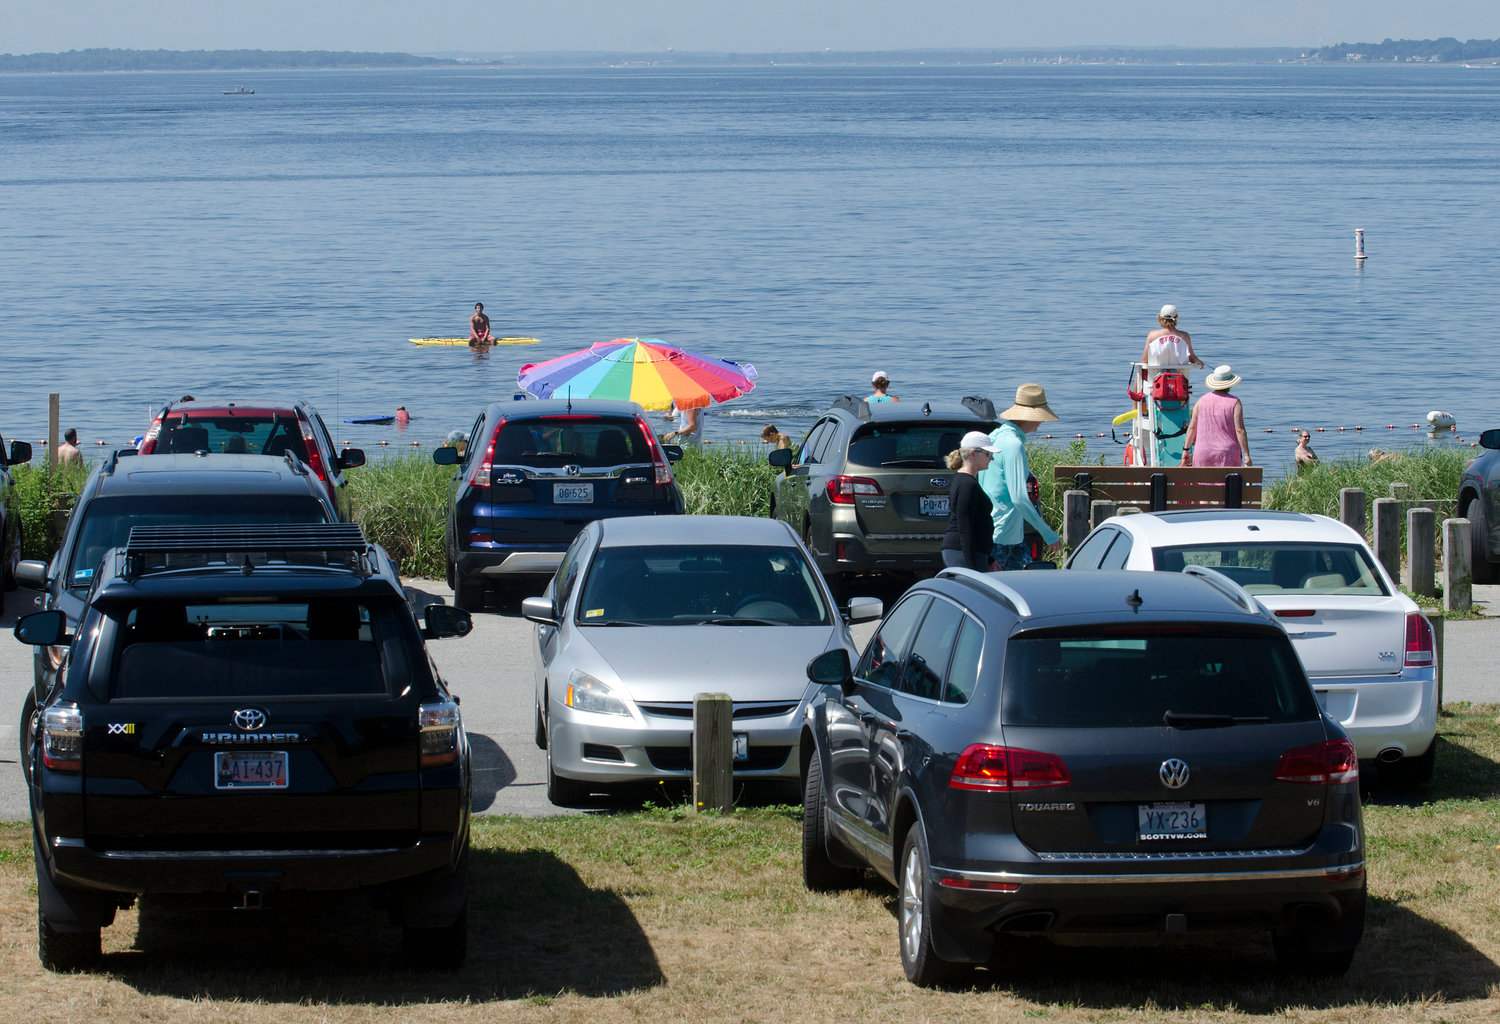 Barrington Town Manager Jim Cunha recently restricted the Barrington Beach parking lot to residents only, from 8 a.m. to 8 p.m. every day of the week.